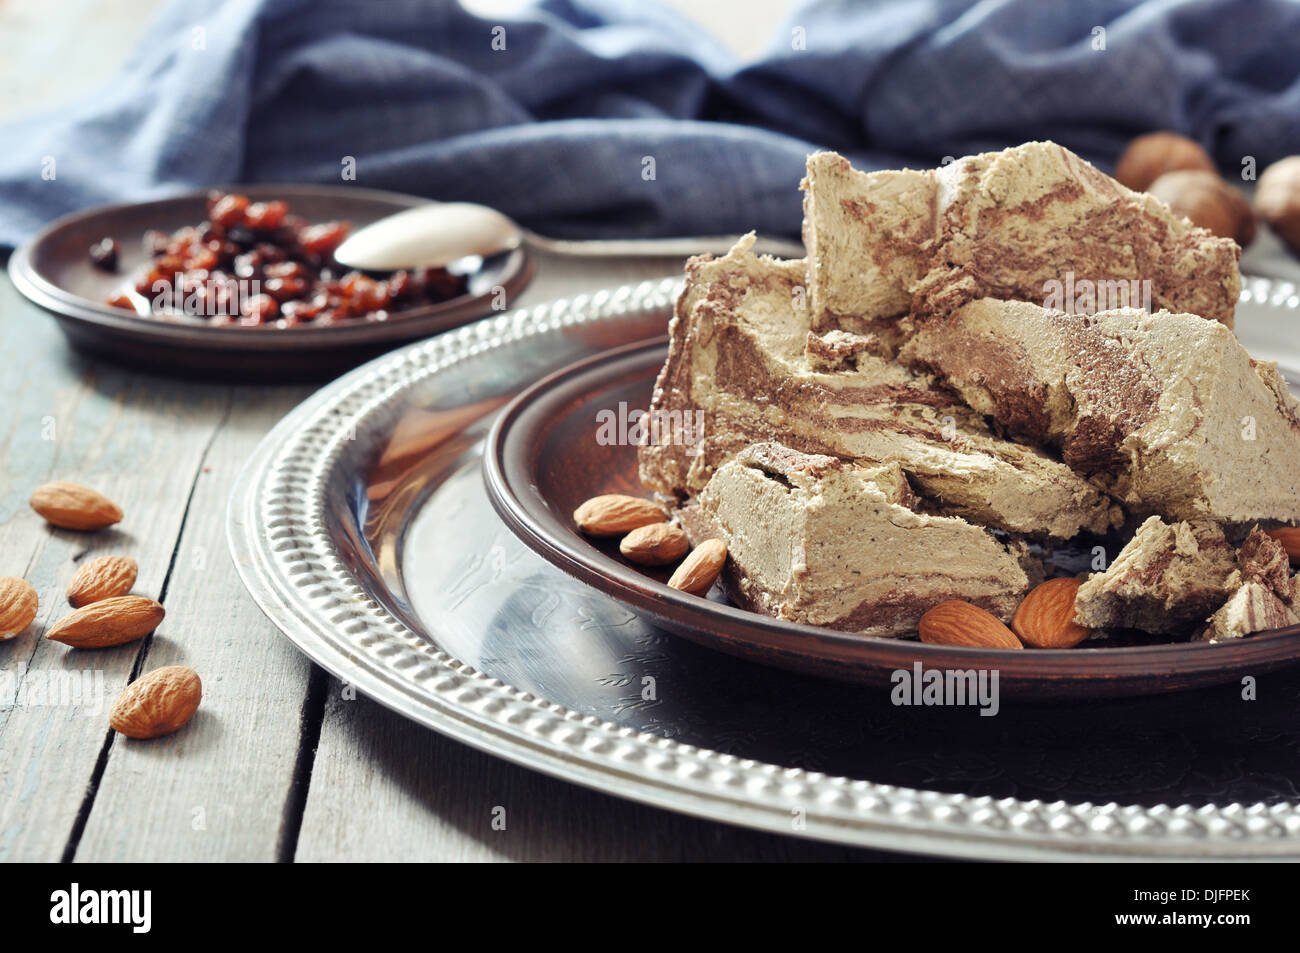 Halva with almonds and raisins on plate closeup - Stock Image